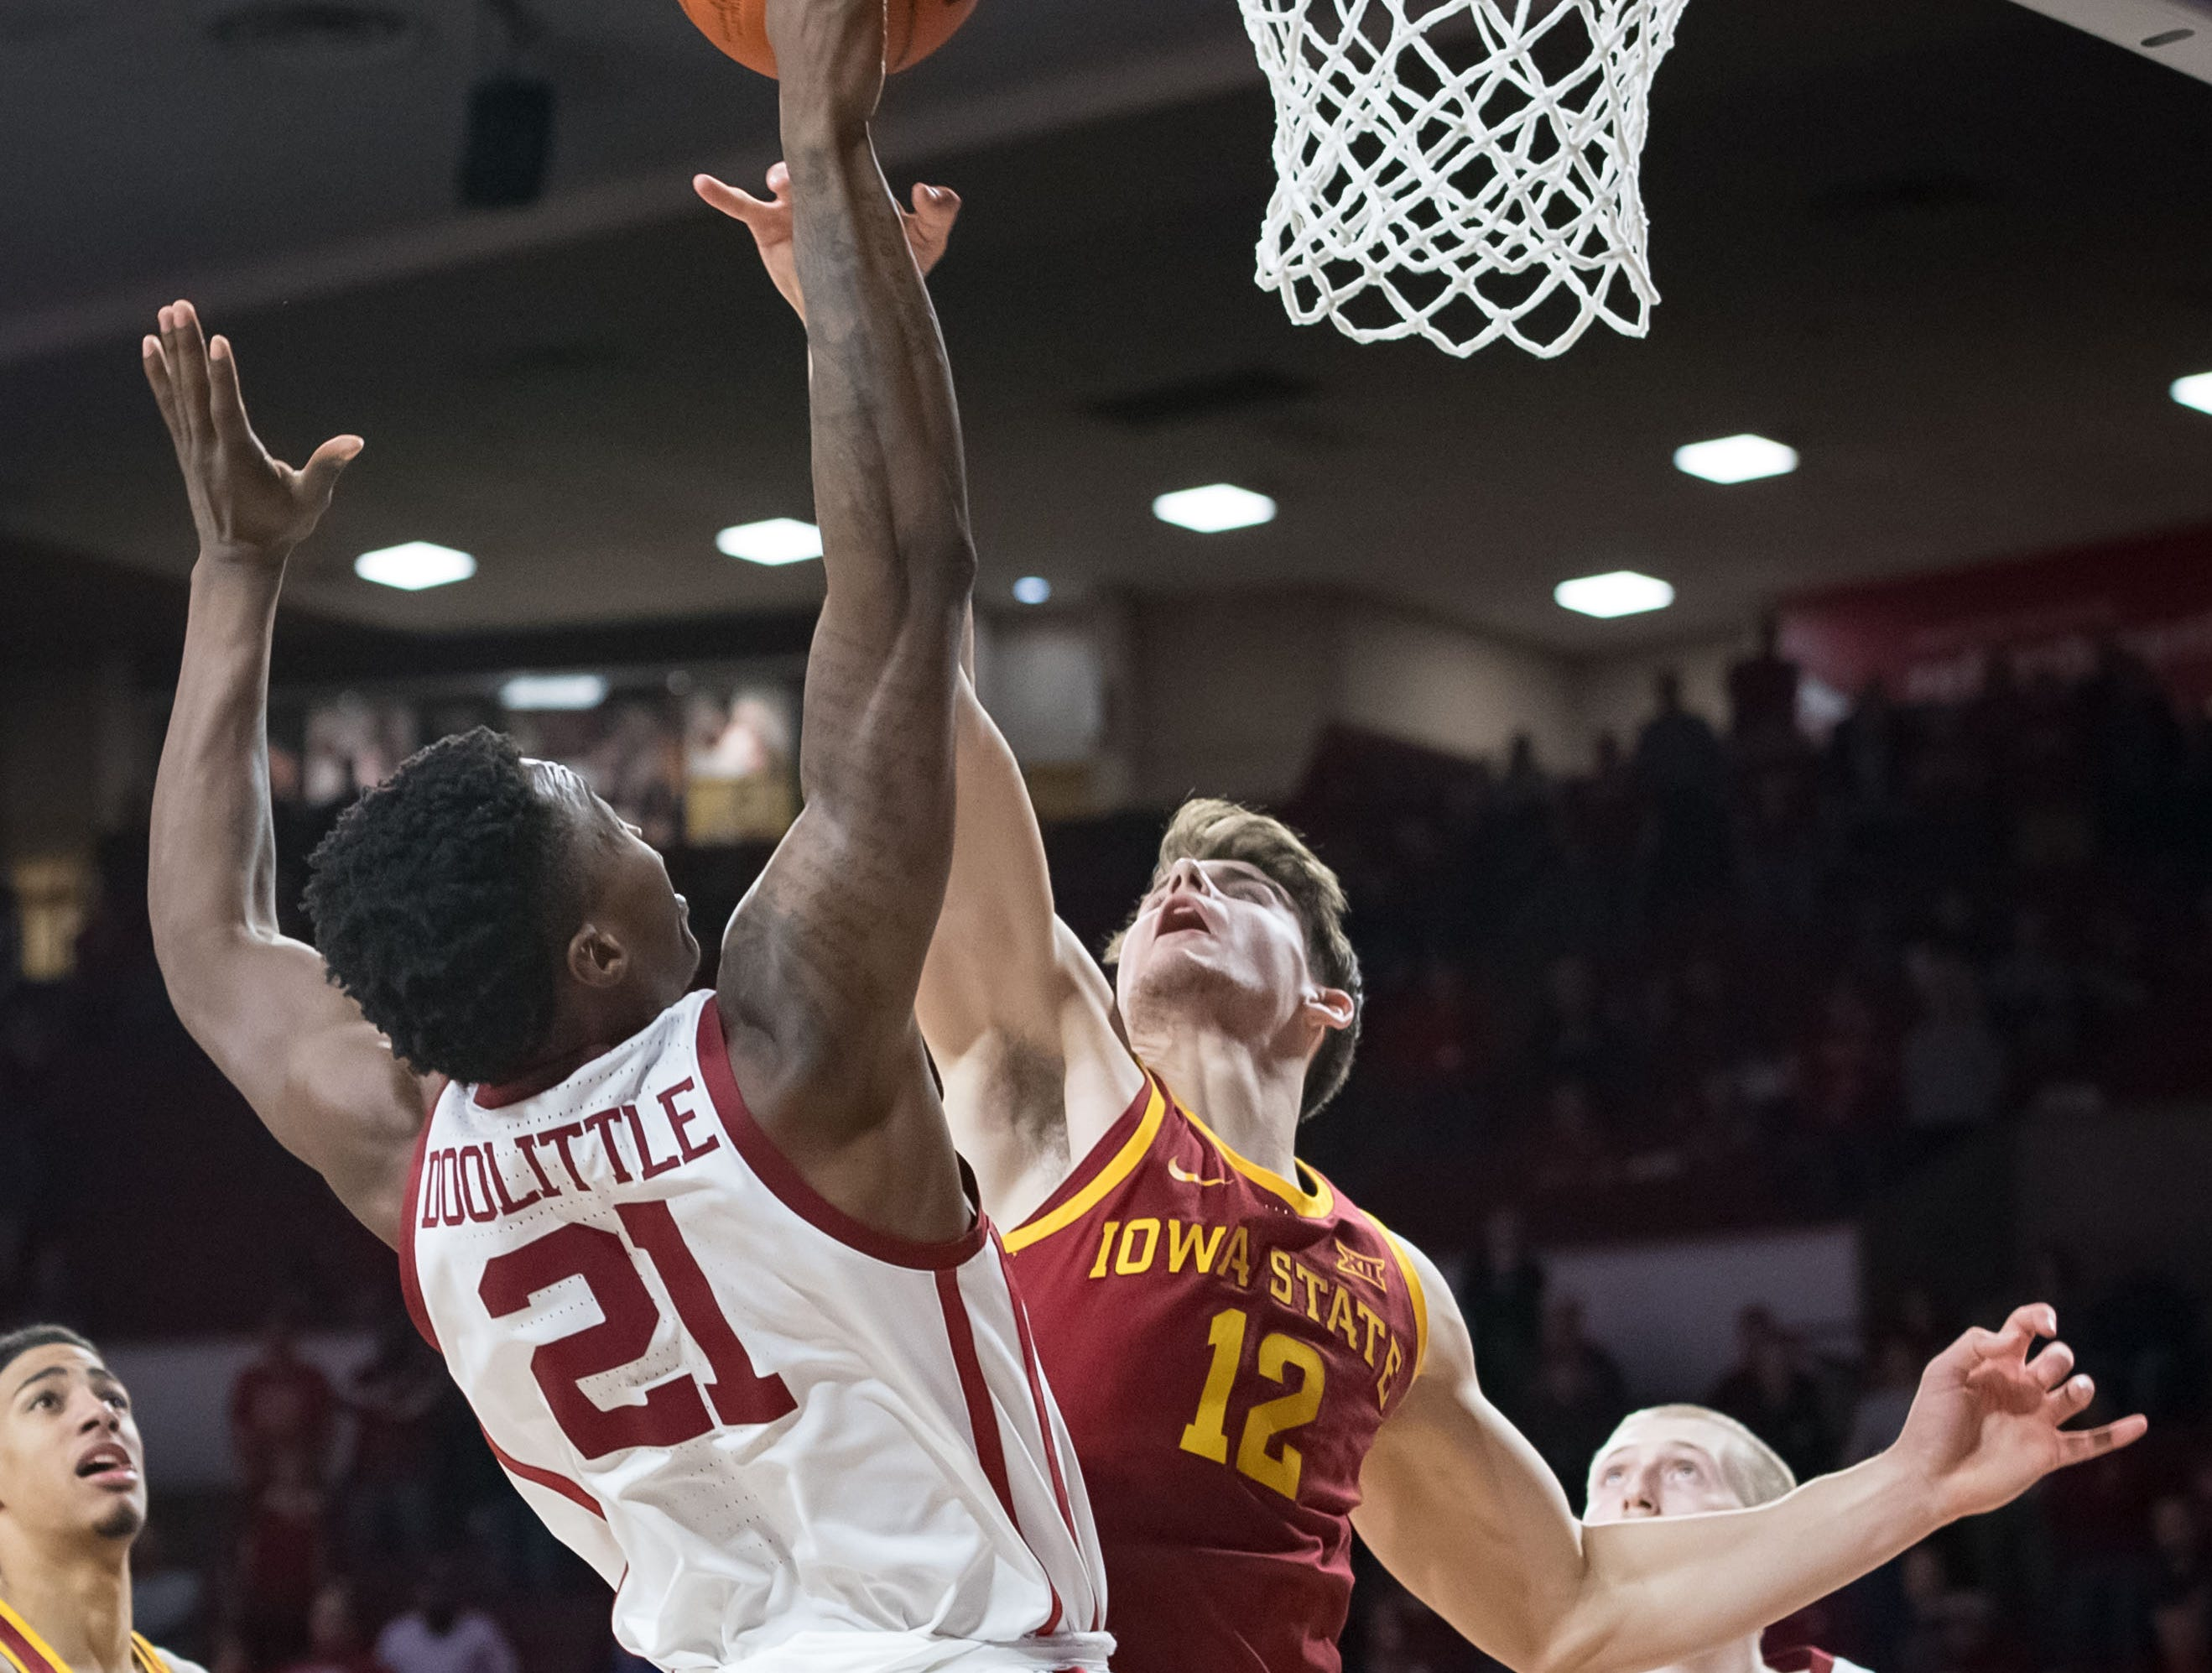 Oklahoma Sooners forward Kristian Doolittle (21) shoots the ball defended by Iowa State Cyclones forward Michael Jacobson (12) during the second half at Lloyd Noble Center.